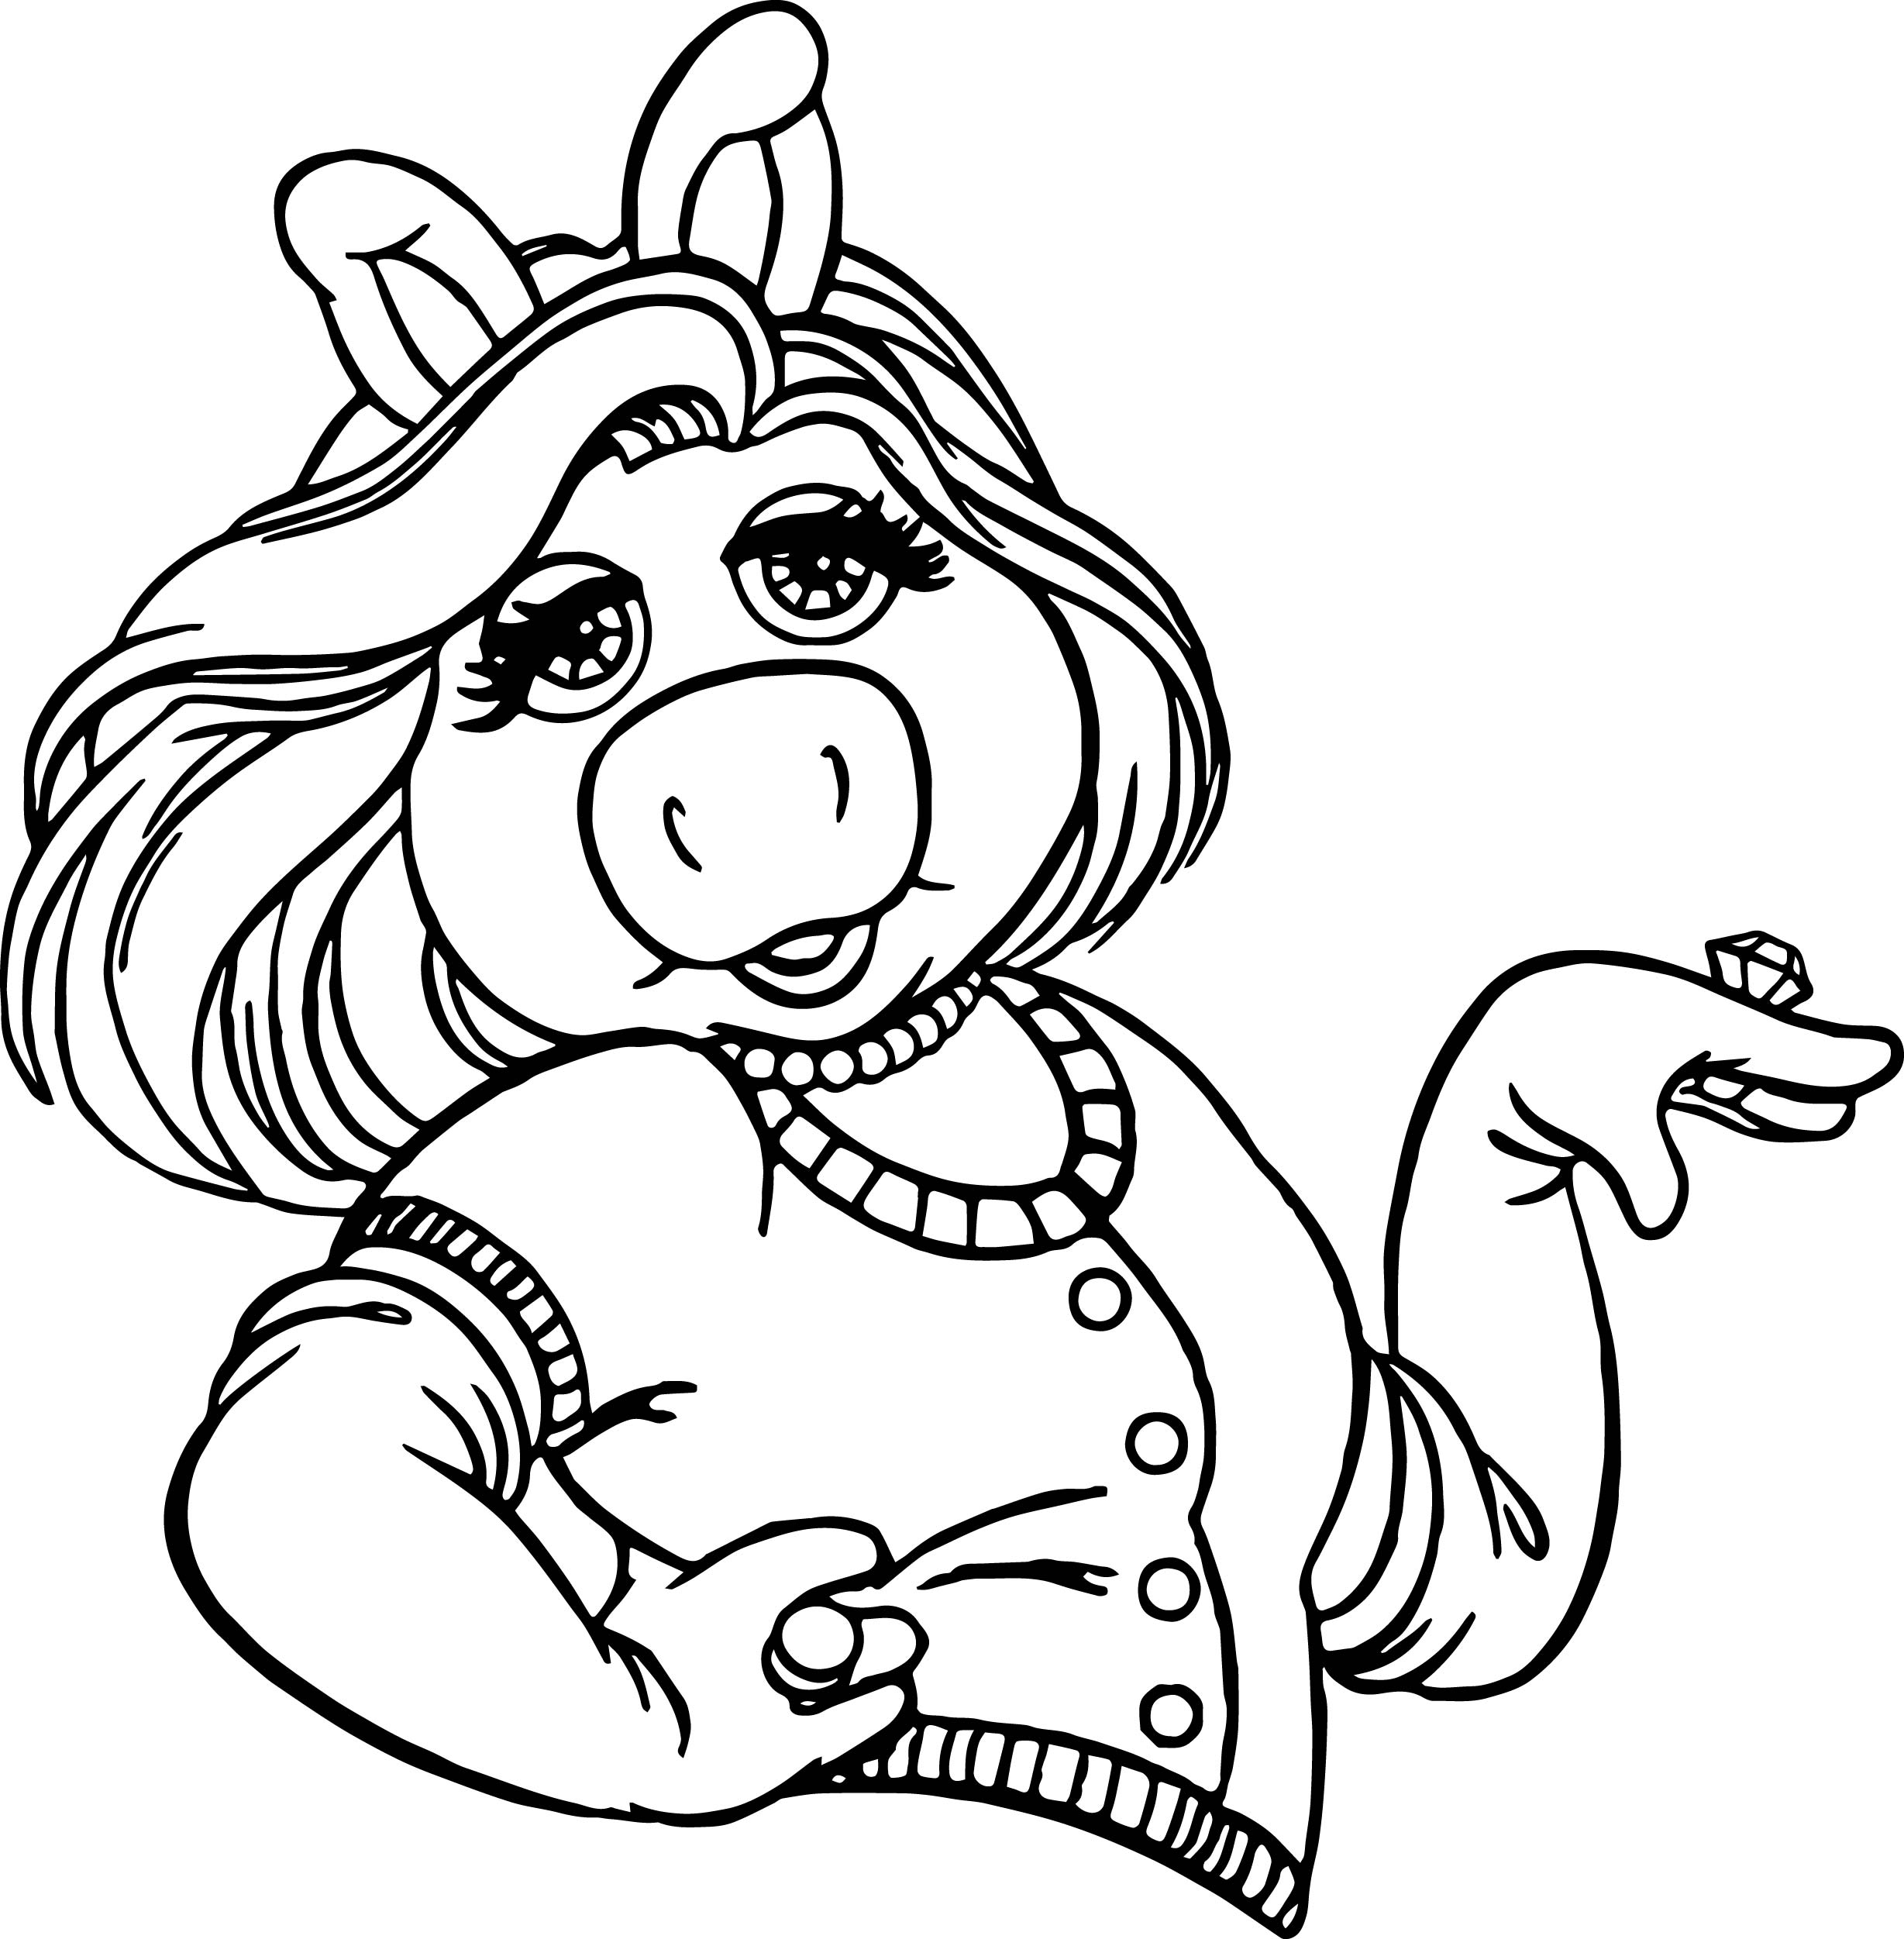 The Muppets Miss Piggy Girl Coloring Pages  Wecoloringpage